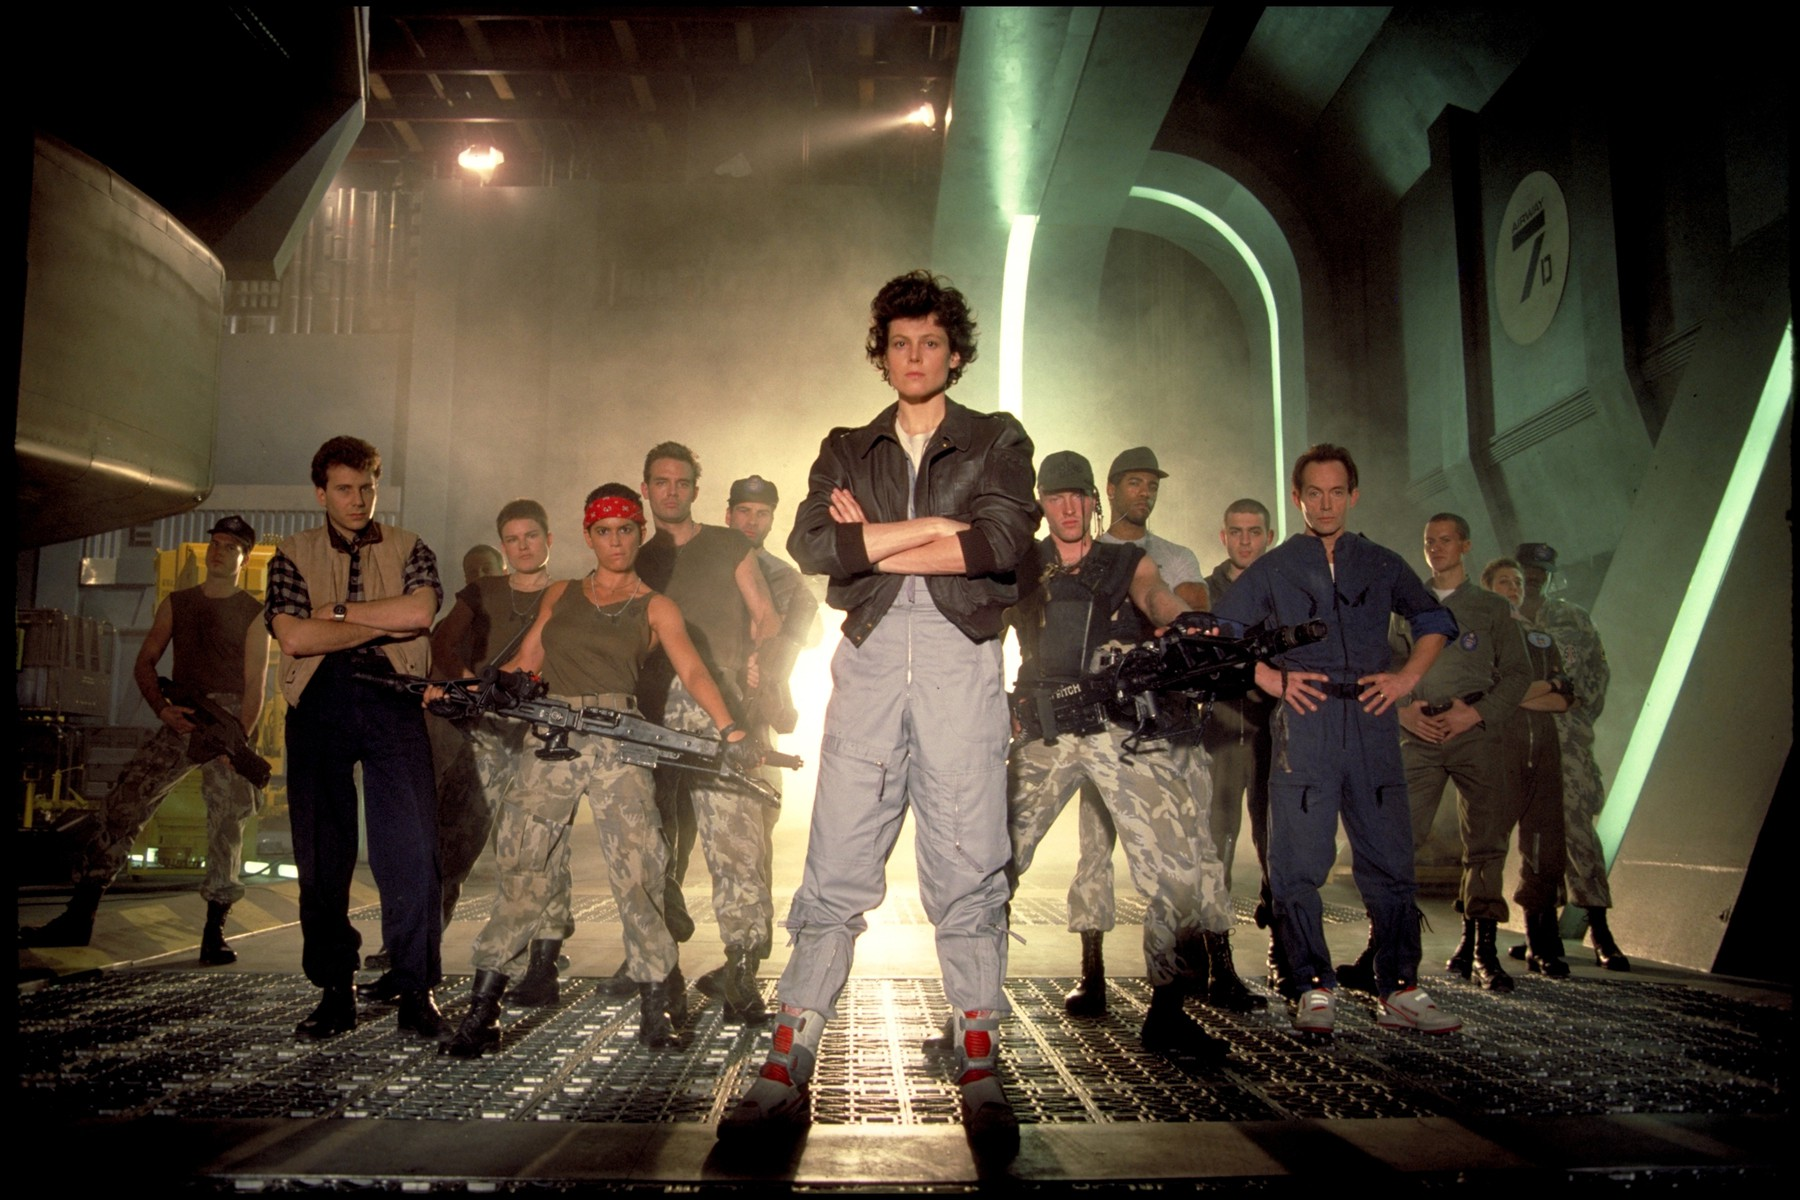 SDCC To HOST A 30TH ANNIVERSARY ALIENS PANEL WITH SIGOURNEY WEAVER, JAMES CAMERON AND MORE!!!